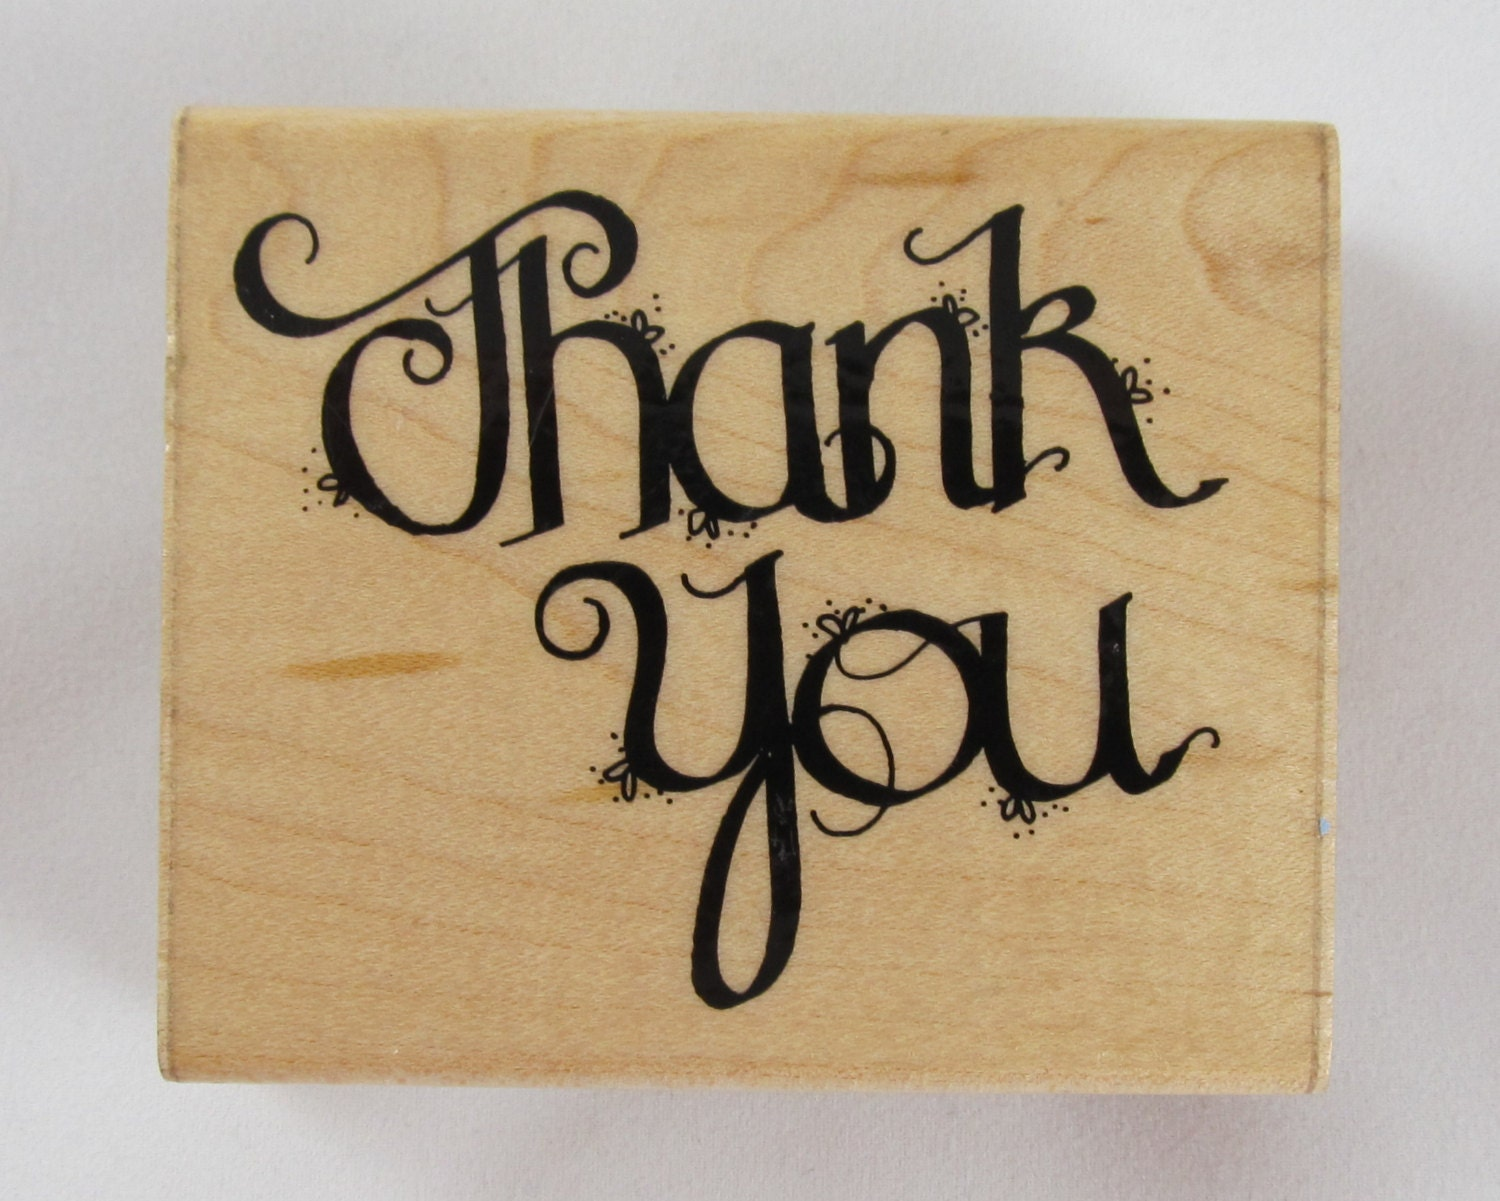 Jrl design thank you calligraphy rubber stamp rs